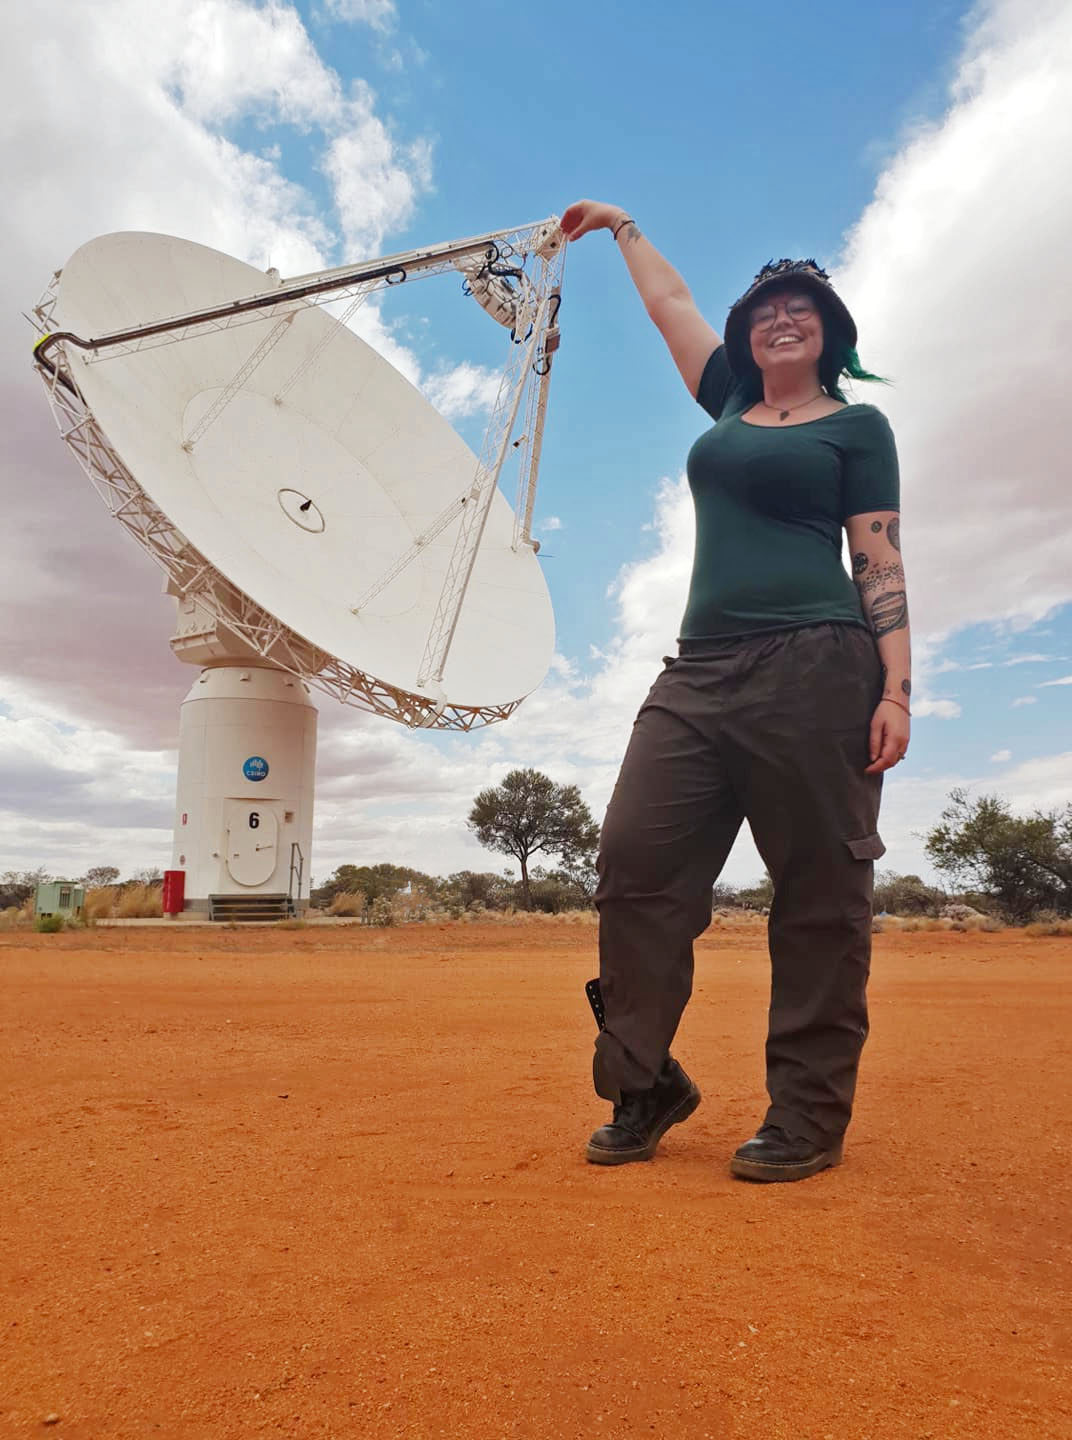 A woman stands infront of a large radio telescope in a desert landscape